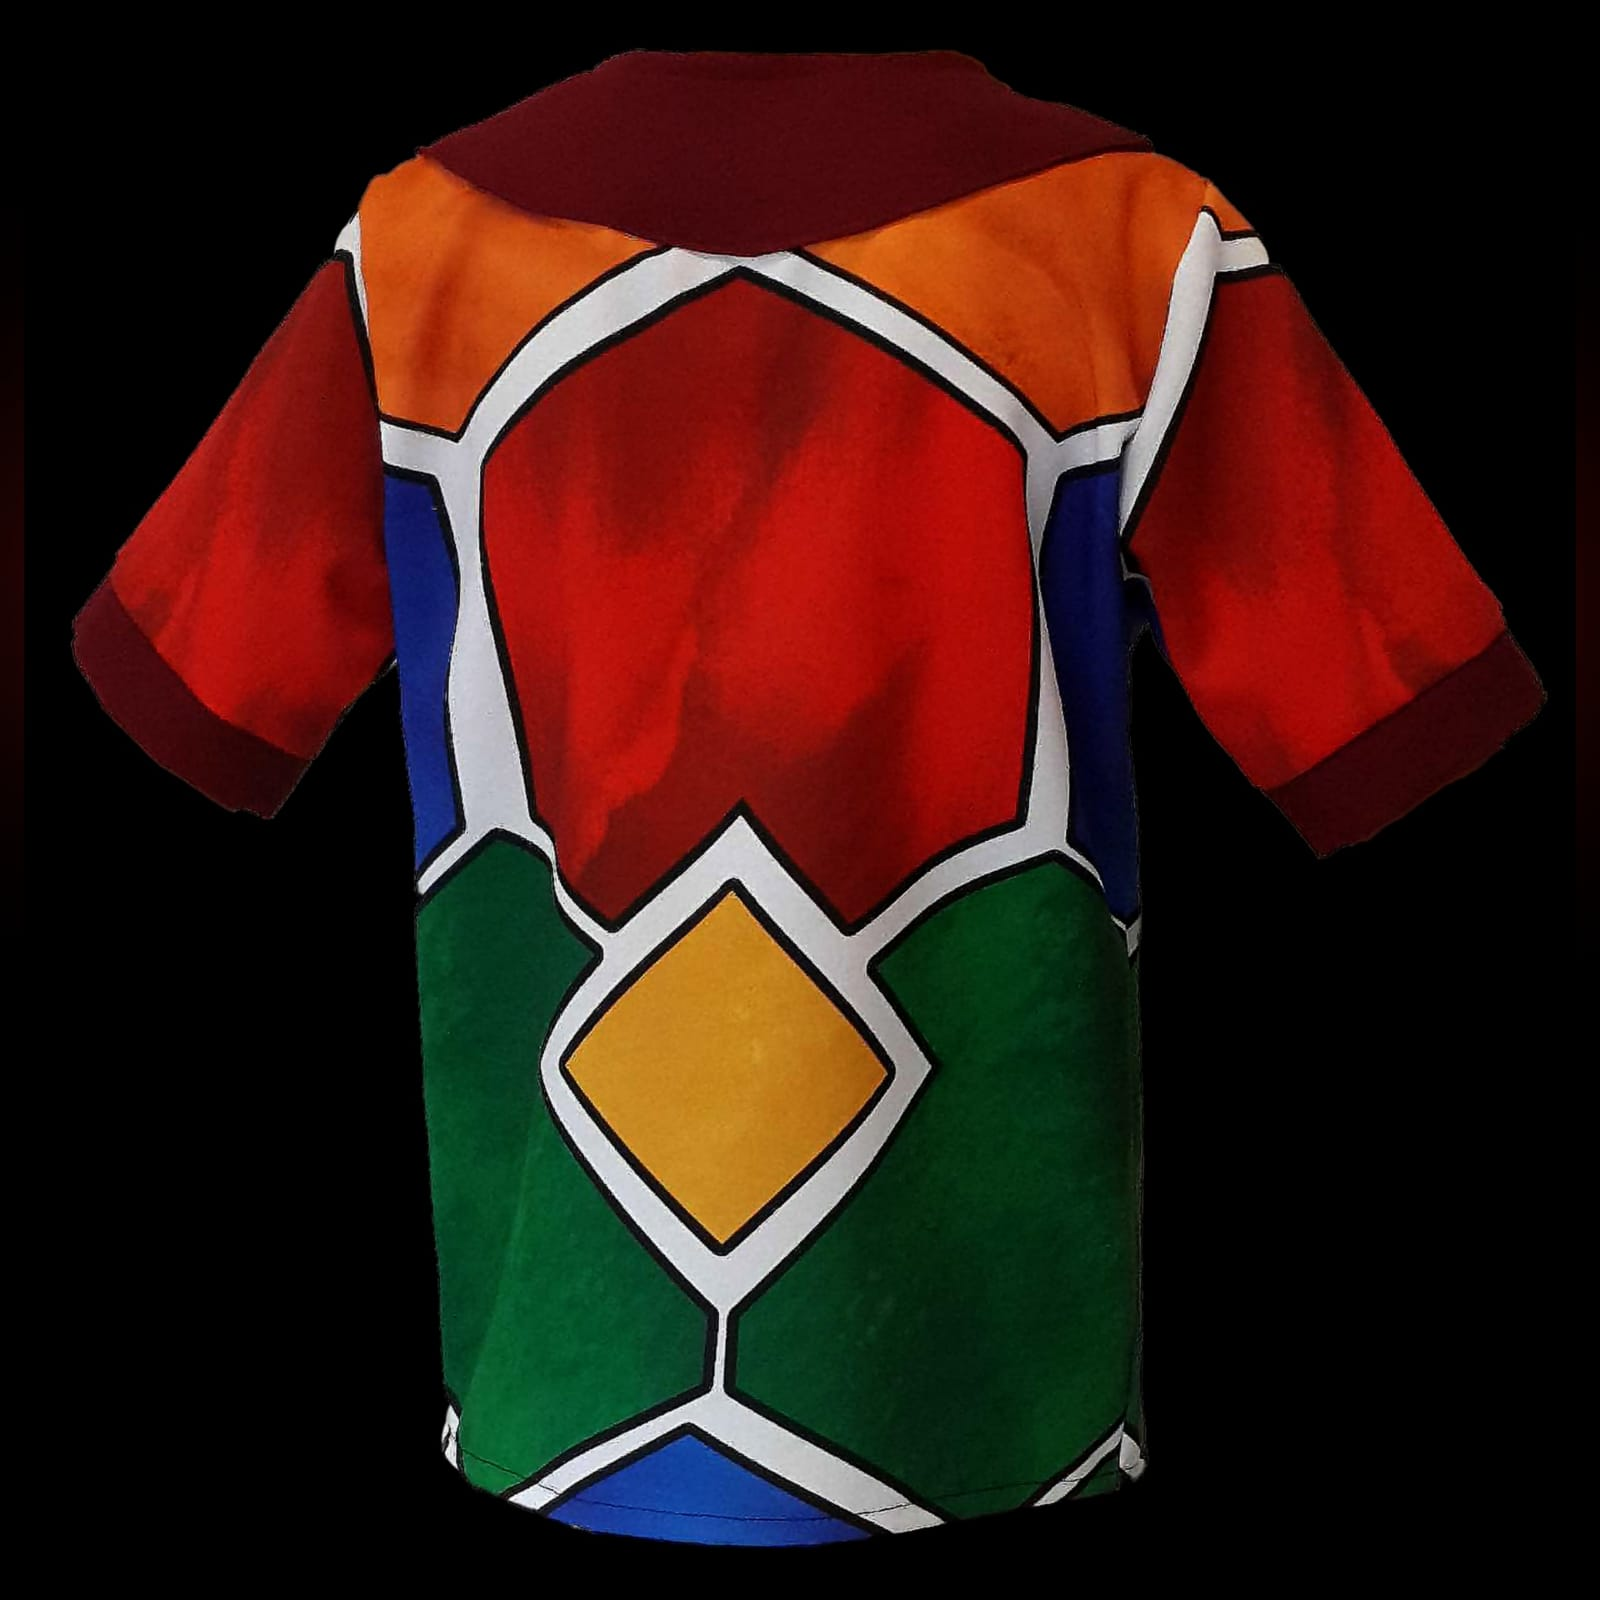 Matching father and son ndebele shirts 6 matching father & son ndebele shirts. Kids shirt sold separately. Please contact us to place an order.